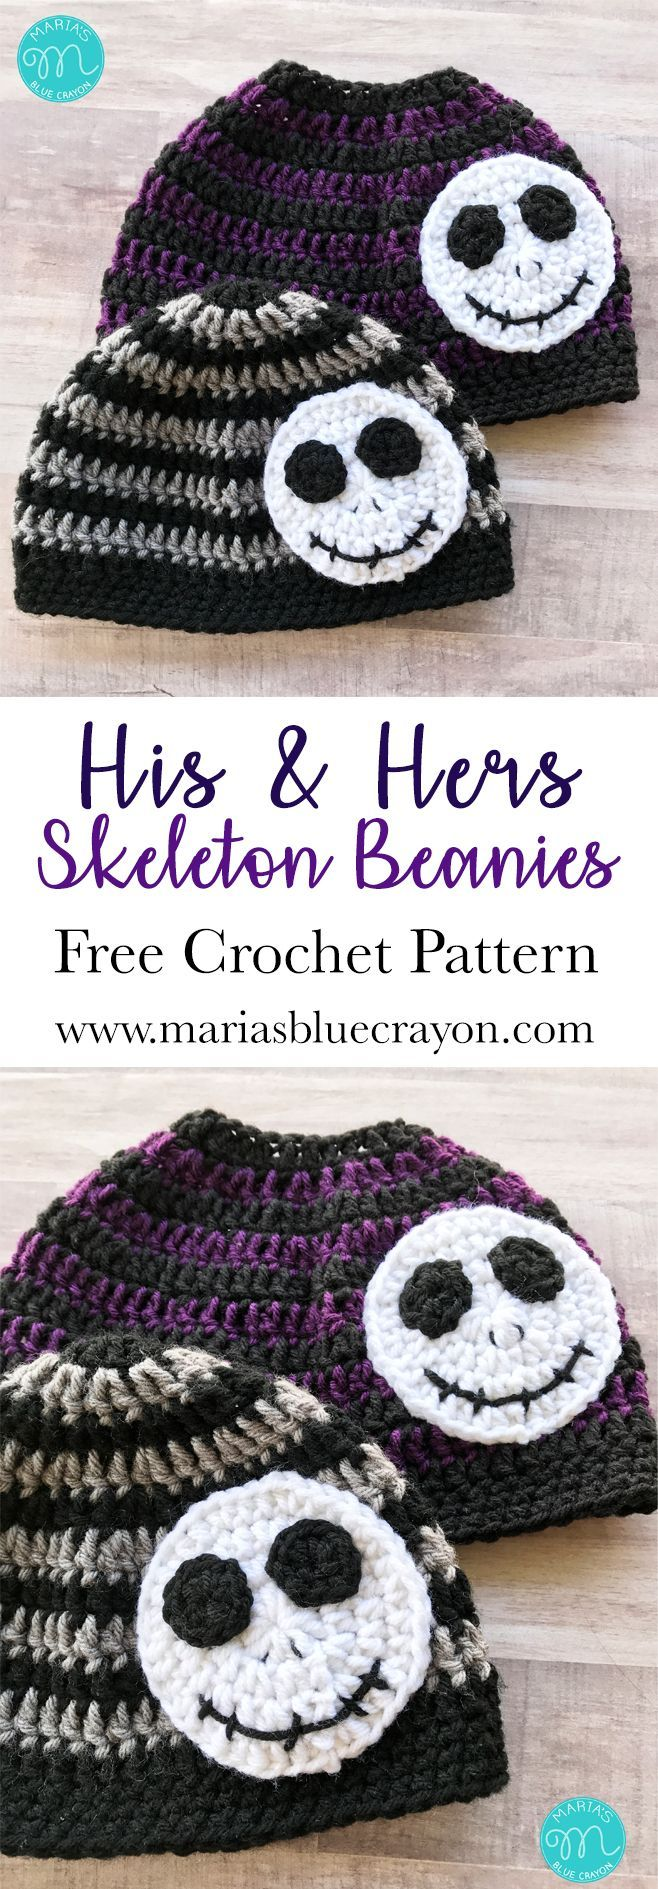 3634 best crochet images on pinterest crocheting free pattern crochet skeleton beanie skeleton messy bun beanie hat striped crochet beanie jack skellington beanie hat nightmare before christmas free crochet pattern bankloansurffo Image collections